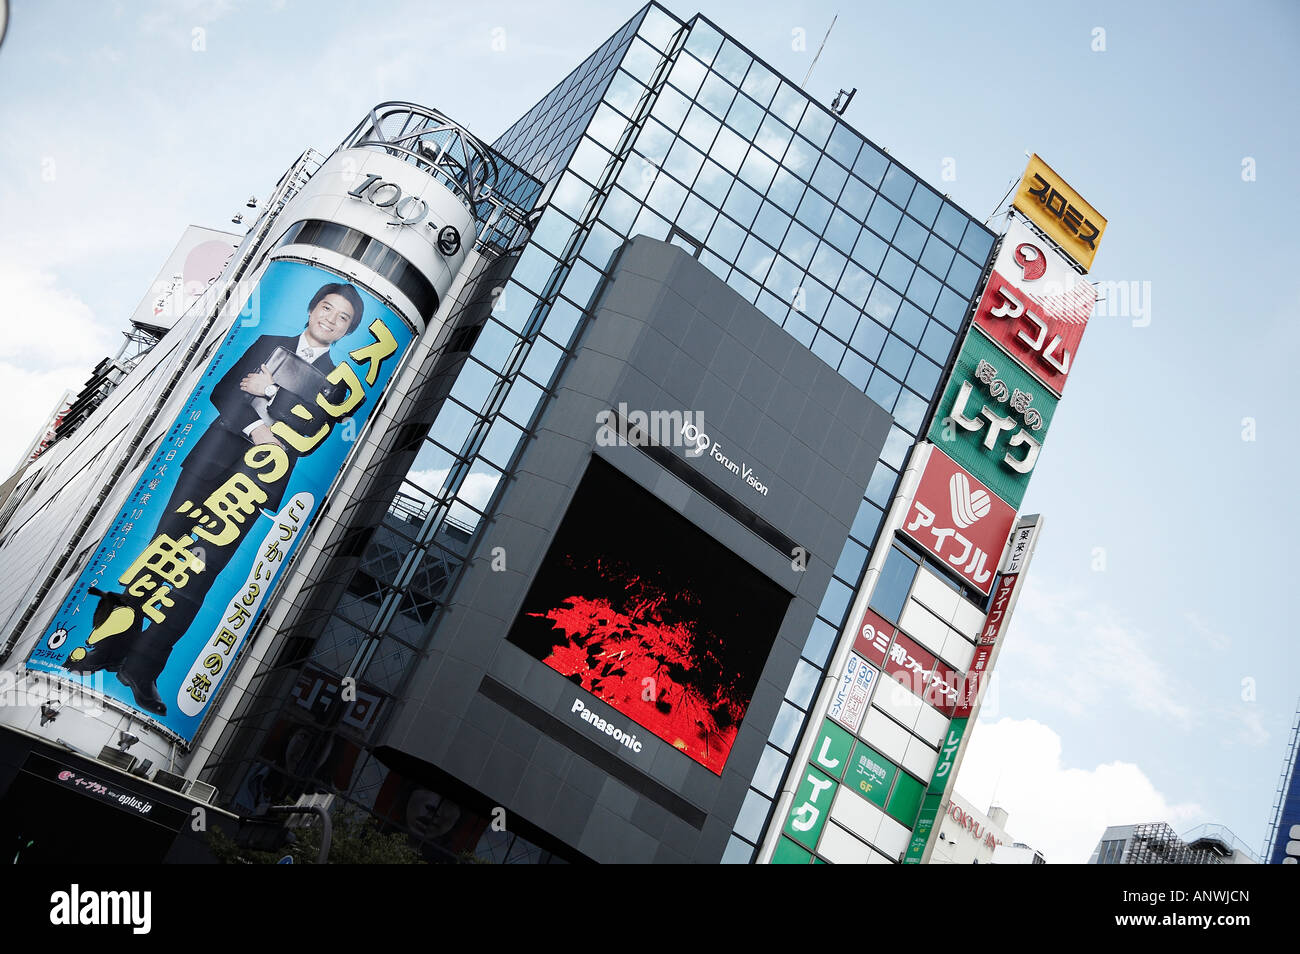 Shibuya neon lights and advertising in tokyo - Stock Image